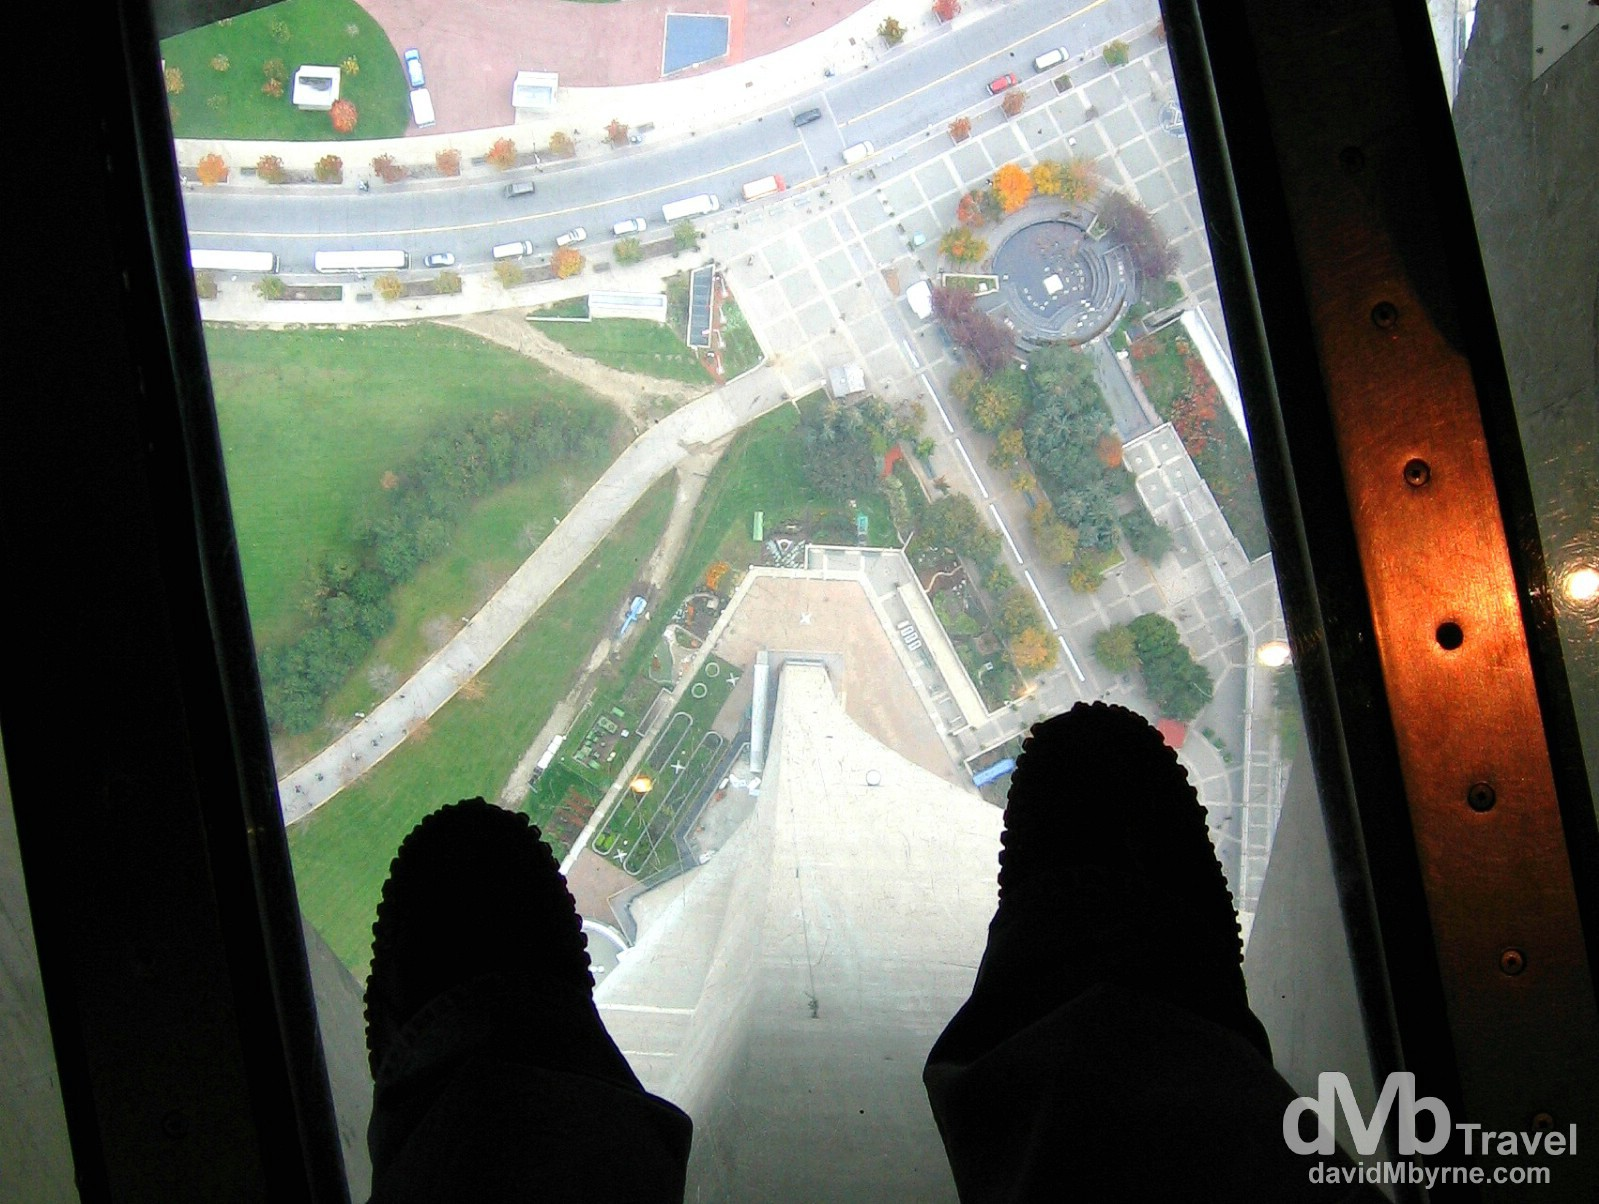 Lookout Cn Tower Toronto Ontario Canada Worldwide Destination Photography Amp Insights From